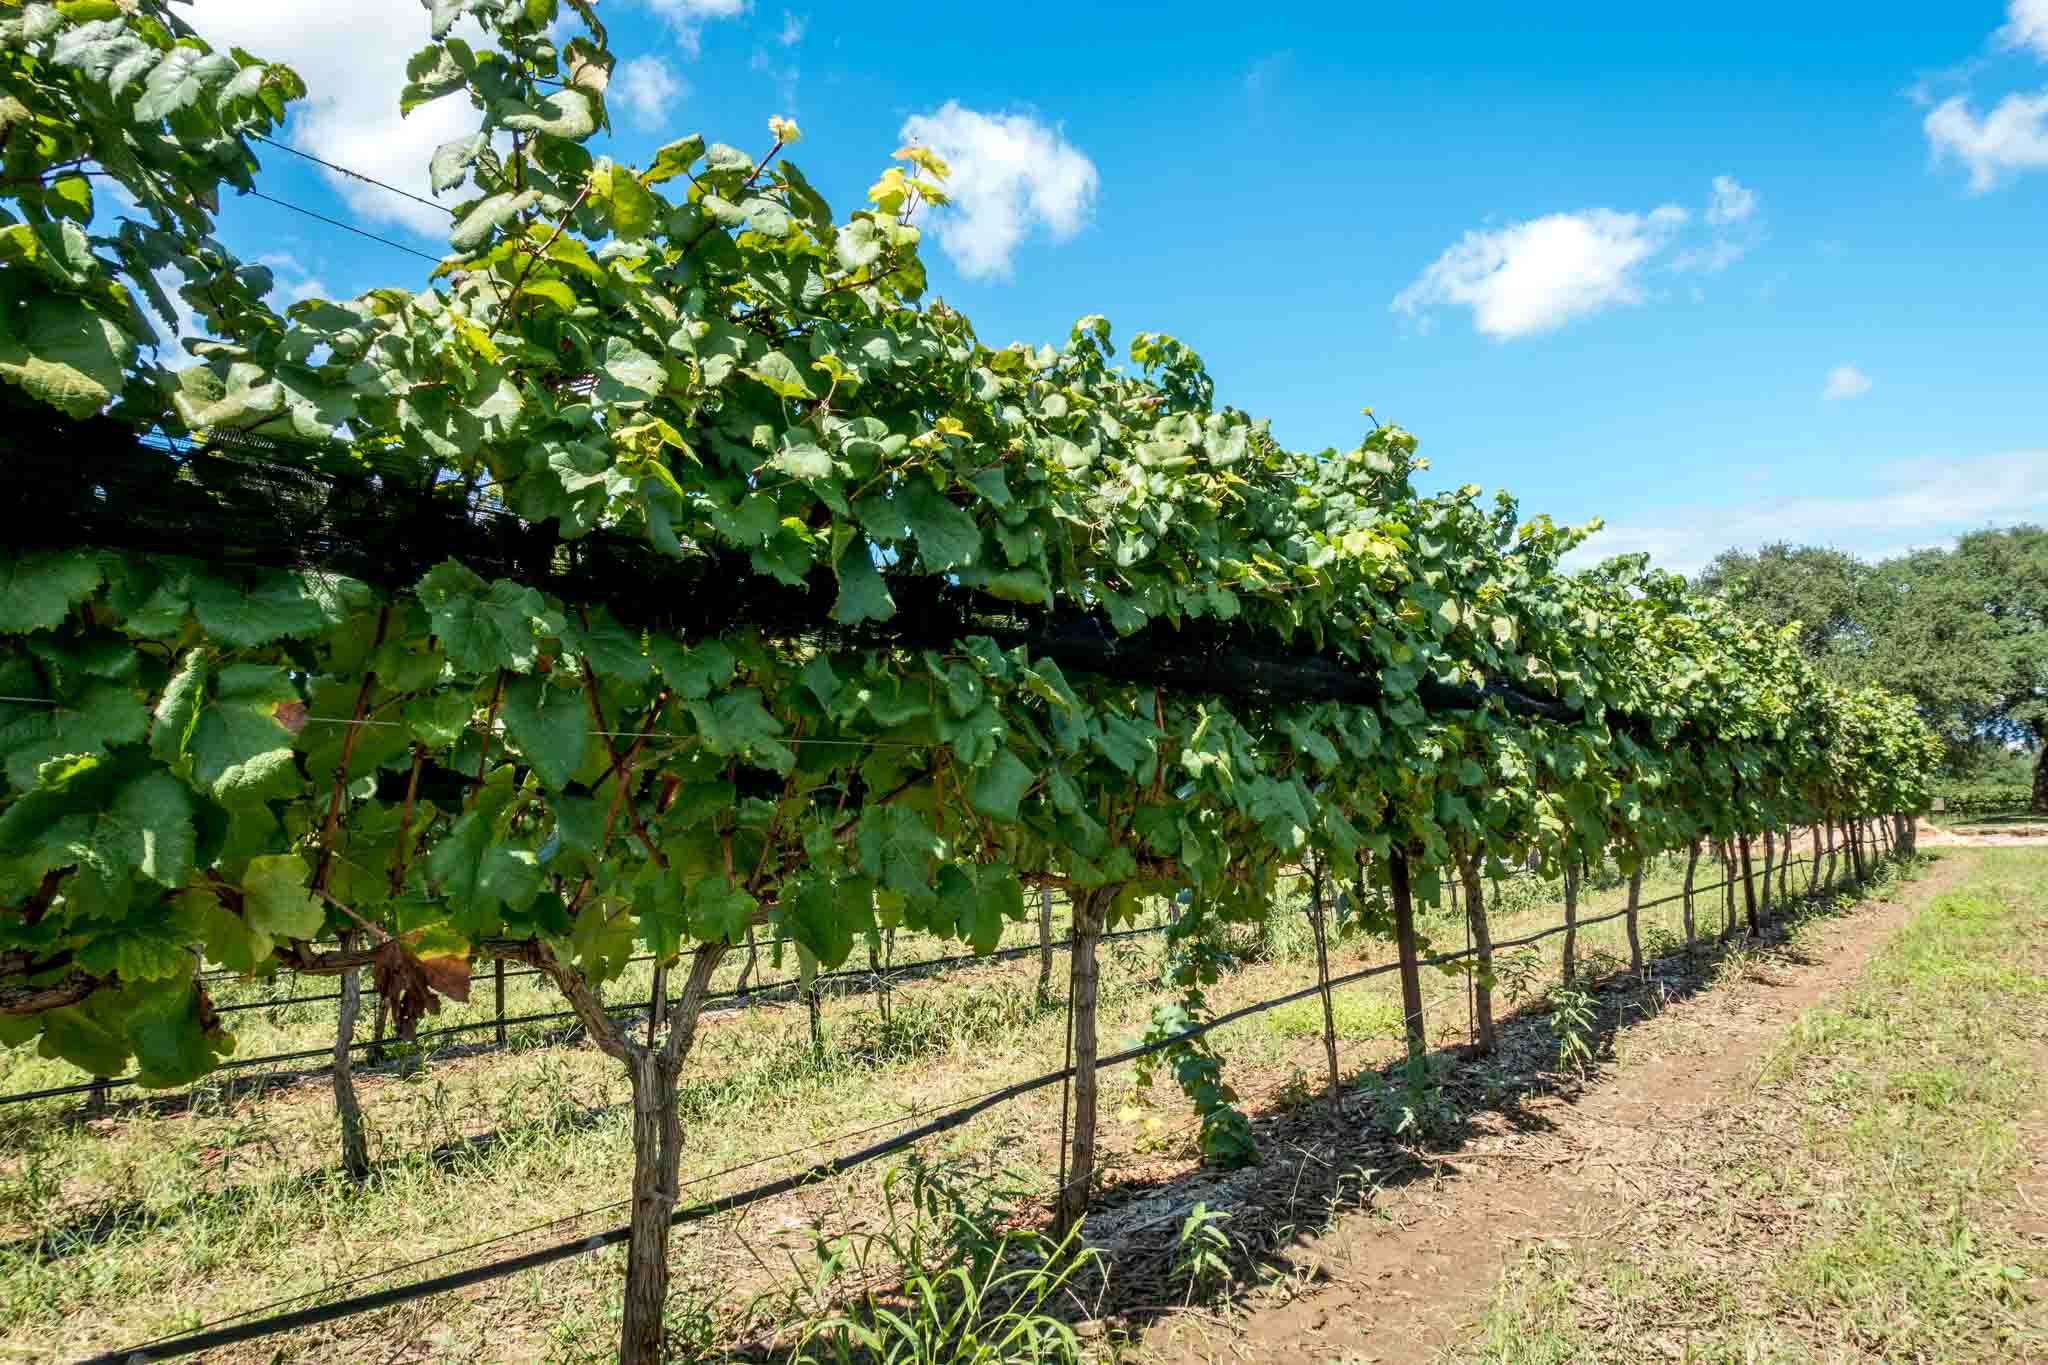 Grapes growing in Fredericksburg vineyard